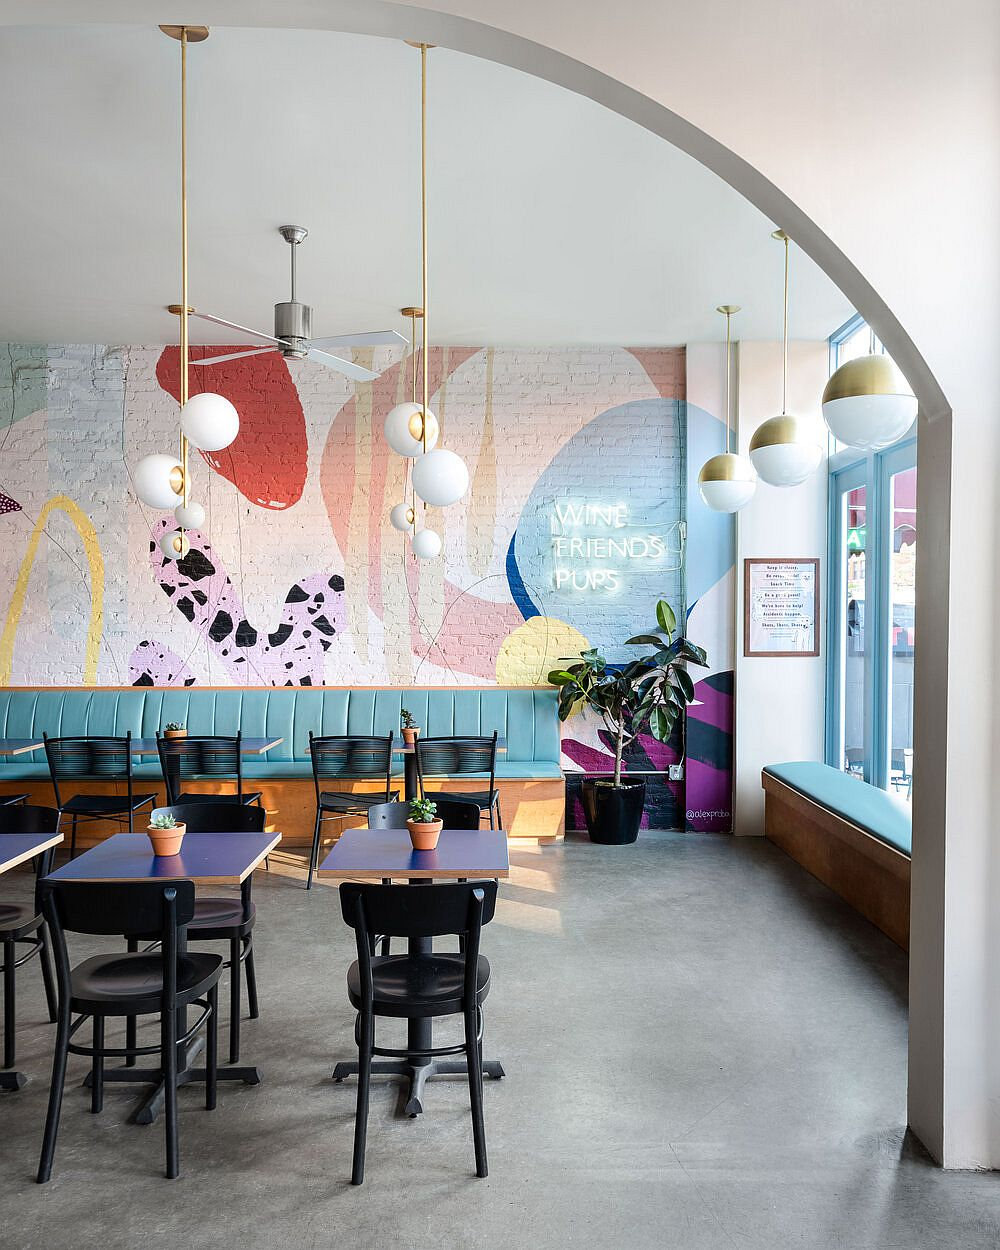 Unique and colorful interior of Boris & Horton in New York City with a pet-friendly design